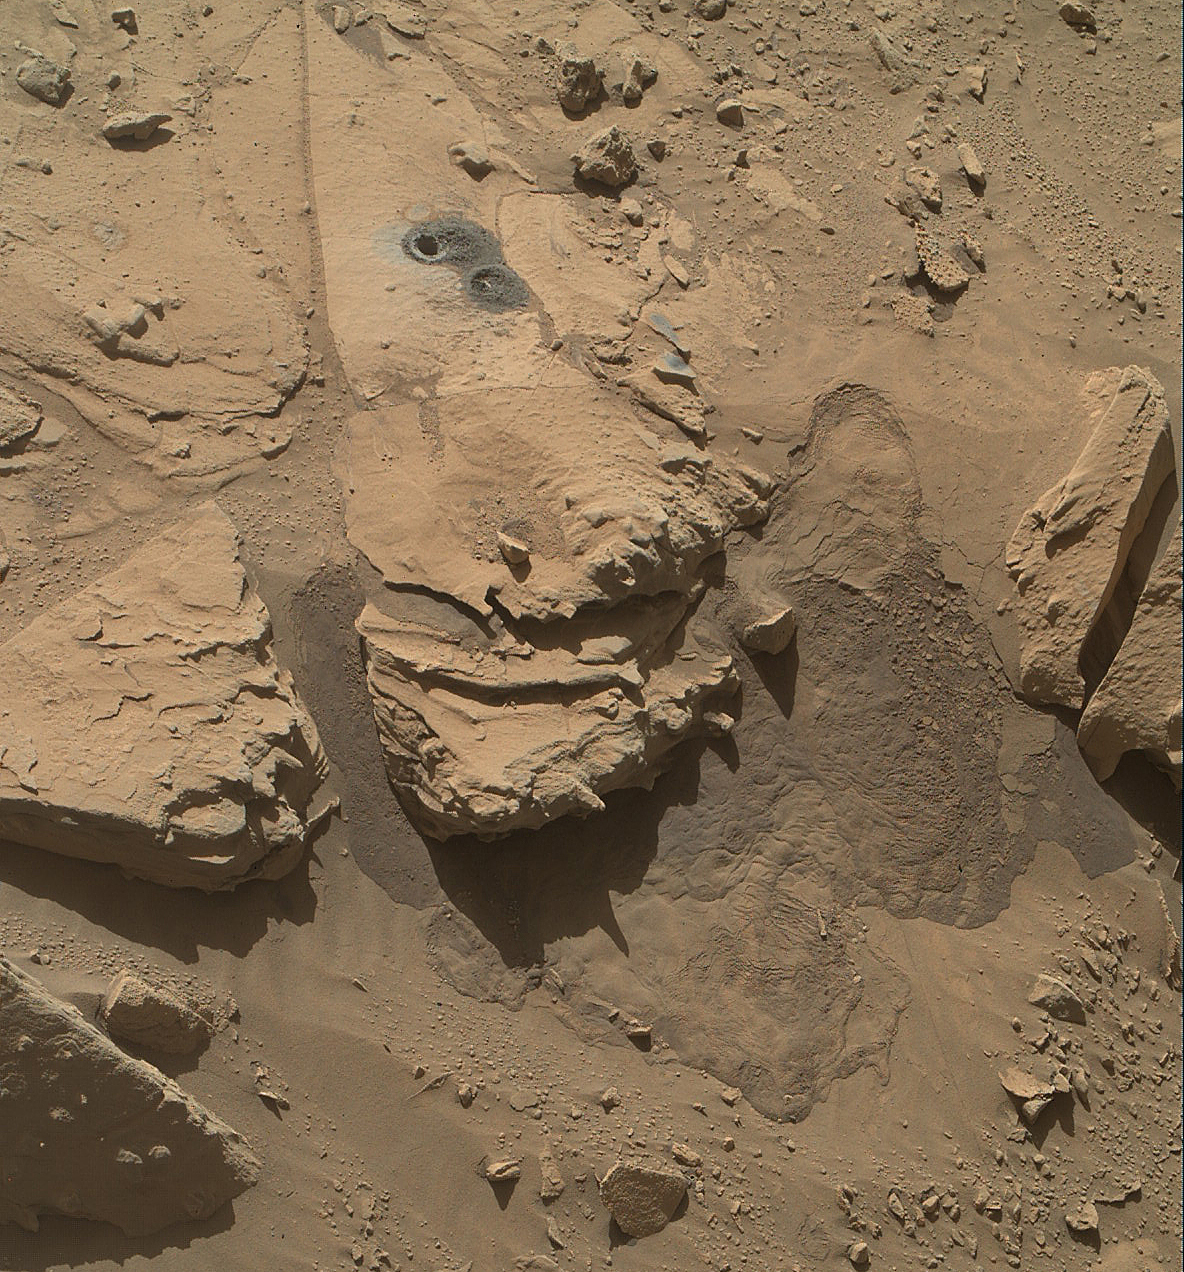 latest mars rover discovery - photo #28